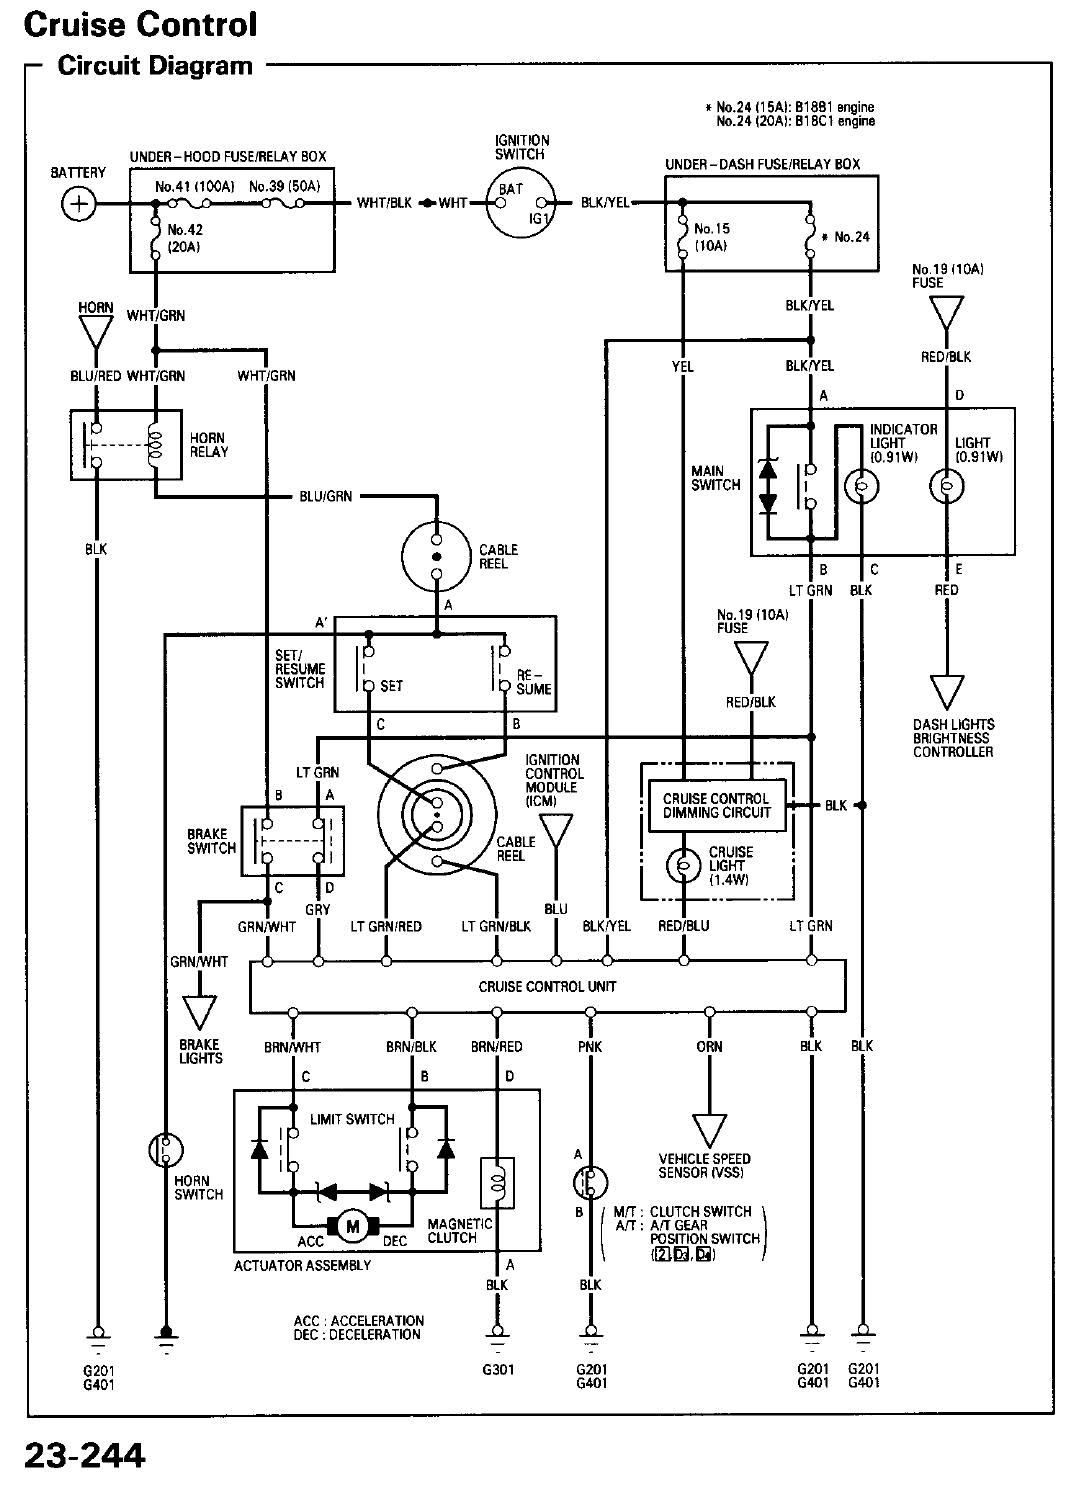 Ap900 Cruise Wiring Diagram 35 Wiring Diagram Download